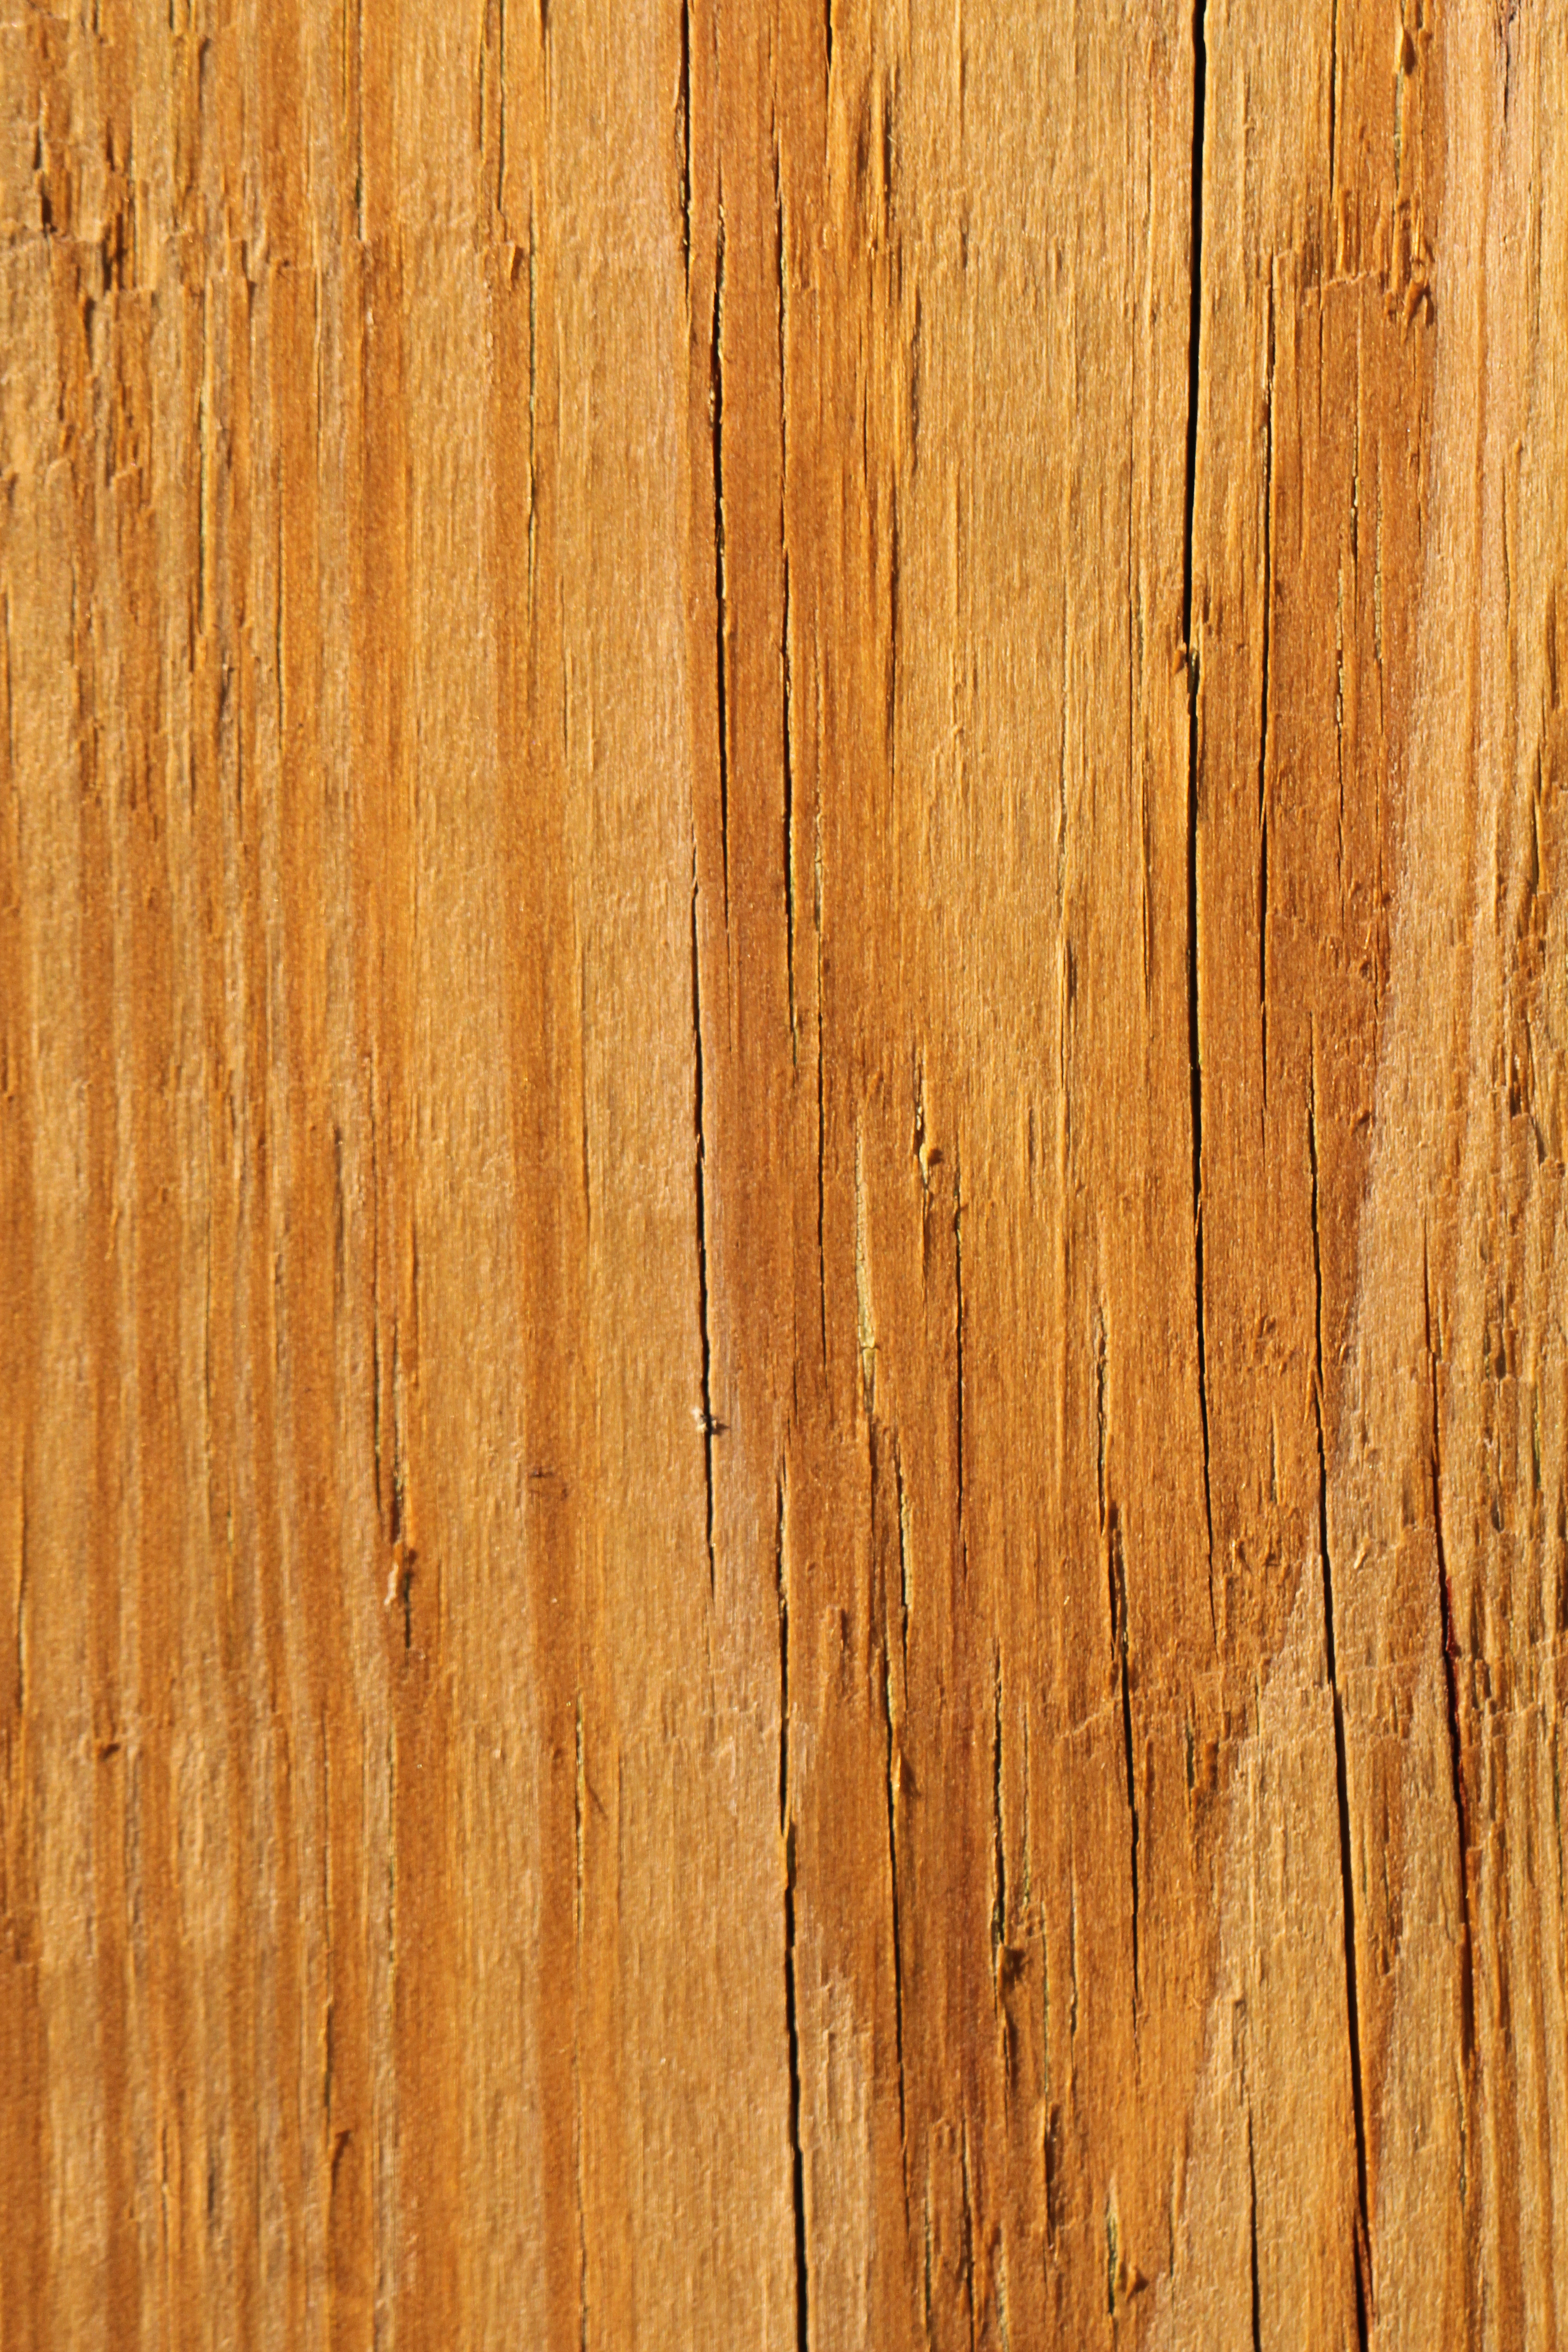 Wooden Board Texture, Board, Brown, Freetexturefrida, Surface, HQ Photo